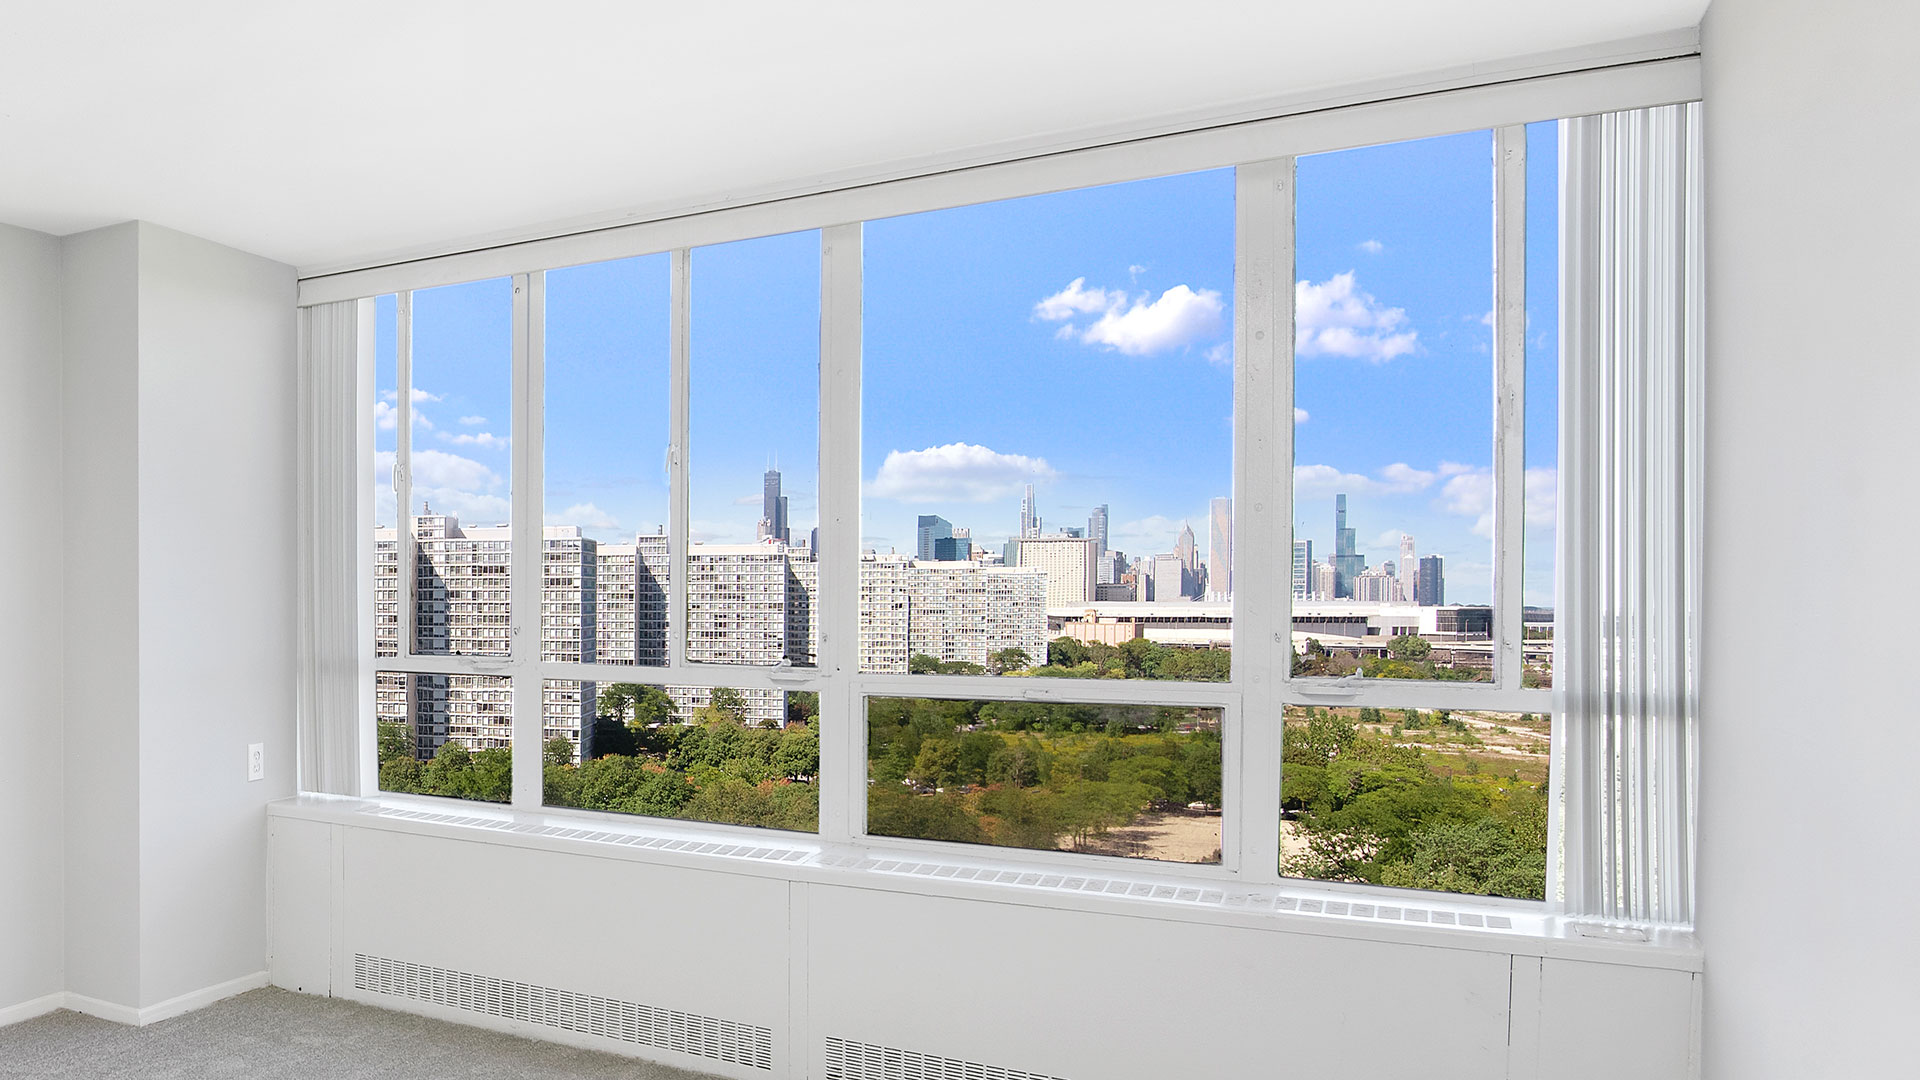 A view of the Chicago skyline looking north through a window in a mid-rise unit at Lake Meadows.